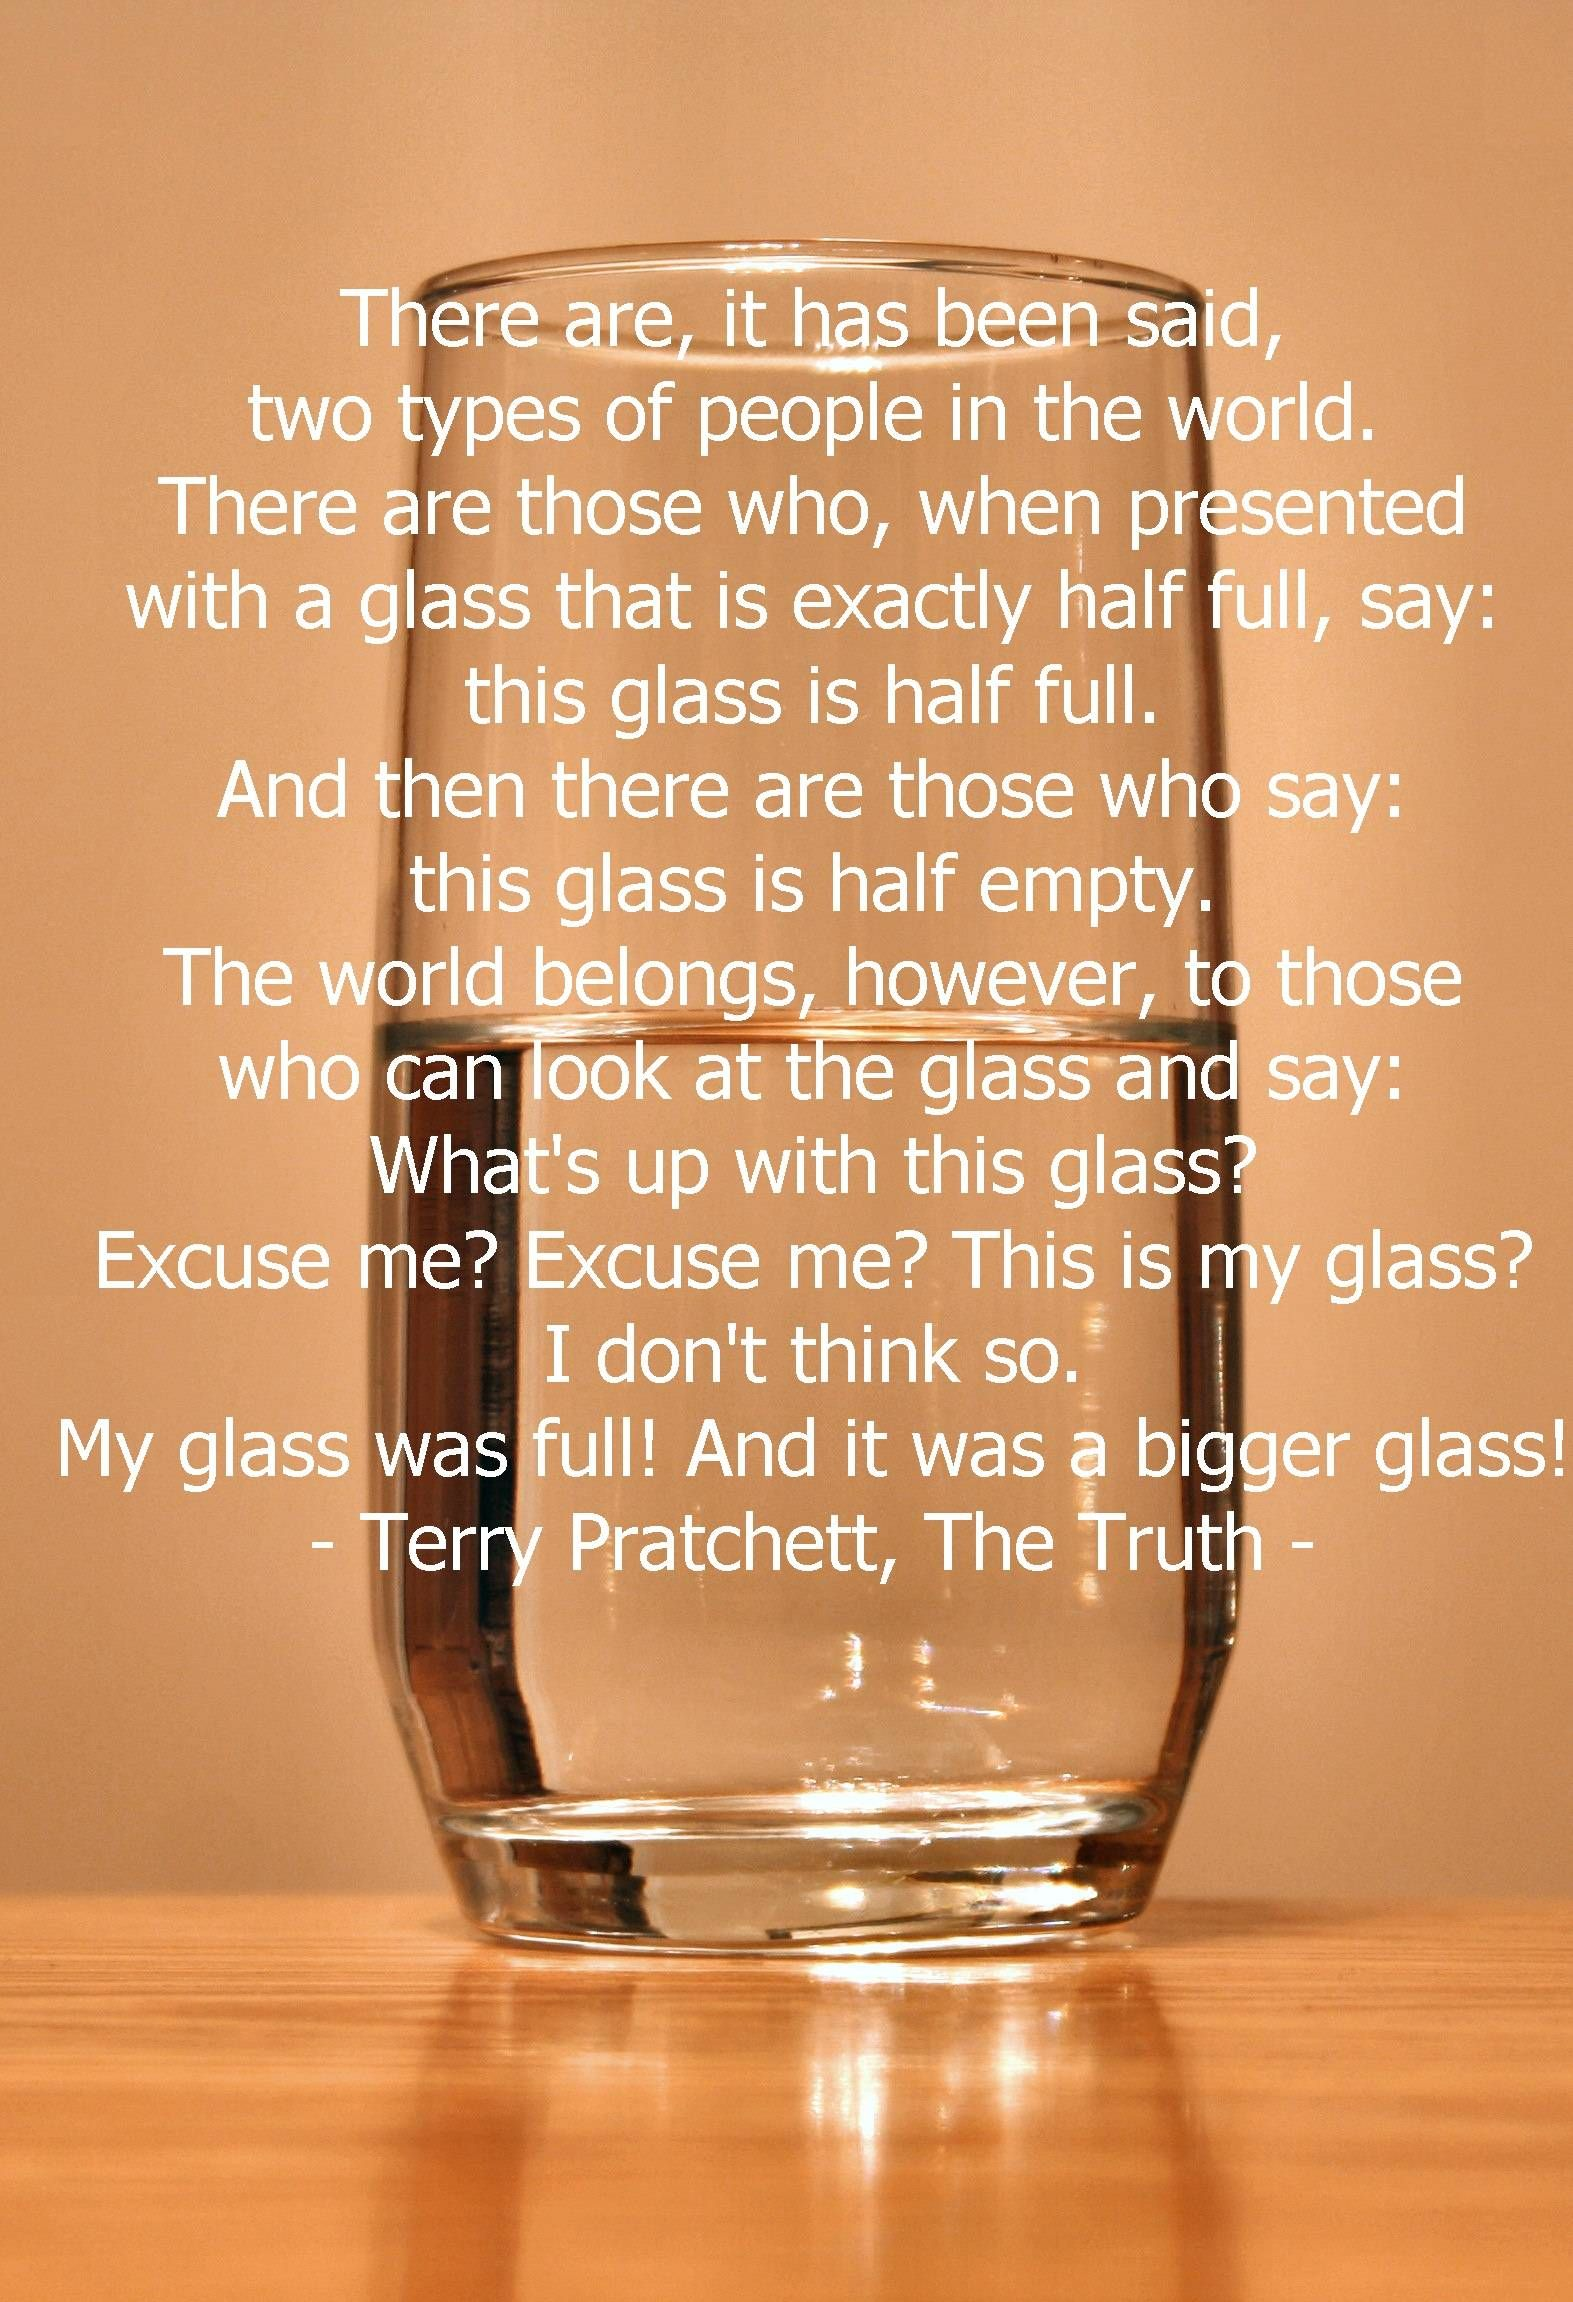 Terry Pratchett The Truth A Quote No Doubt Dedicated To My